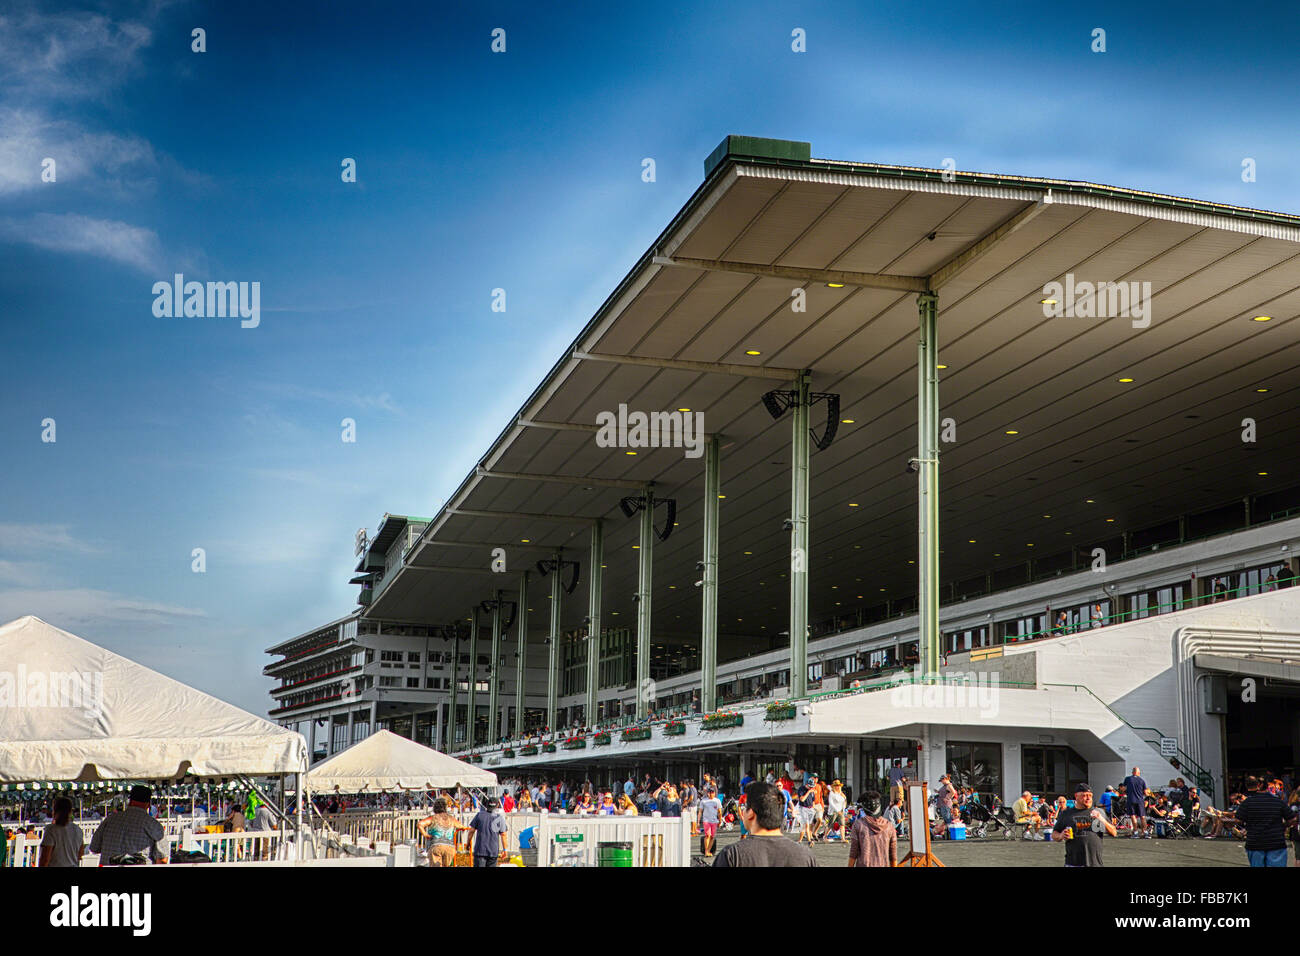 Low Angle View of the Grandstand Pavilion on the Monmouth Park Race Track Oceanport, New Jersey Stock Photo